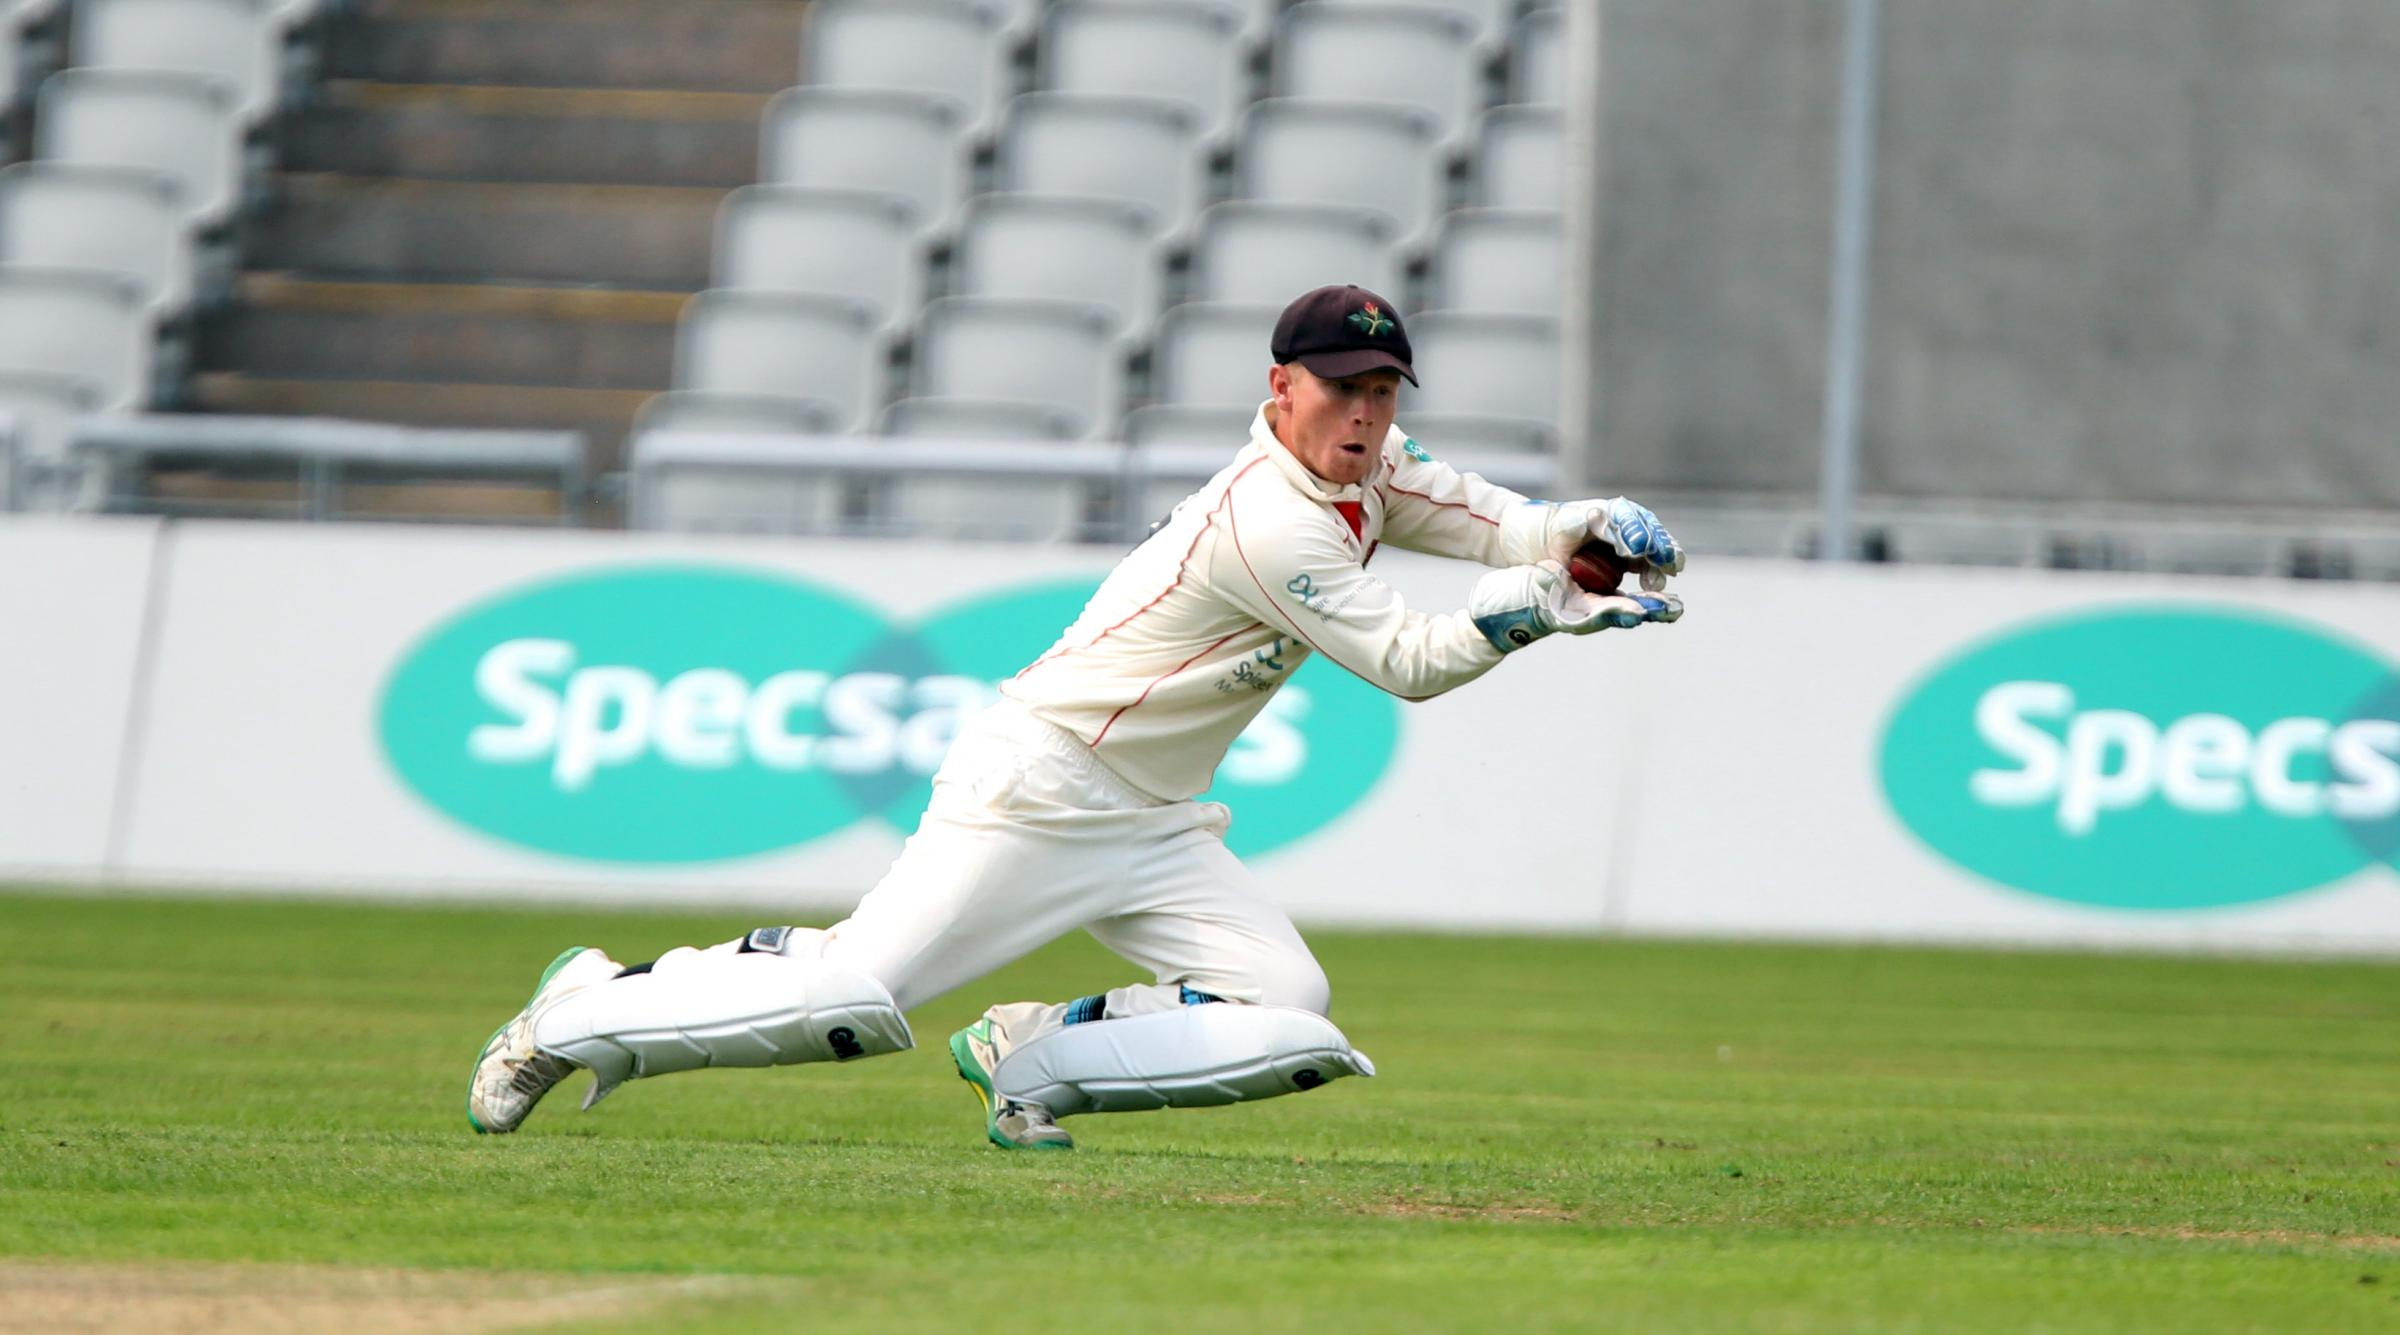 Alex Davies is looking forward to resuming wicket-keeping duty for Lancashire sooner rather than later